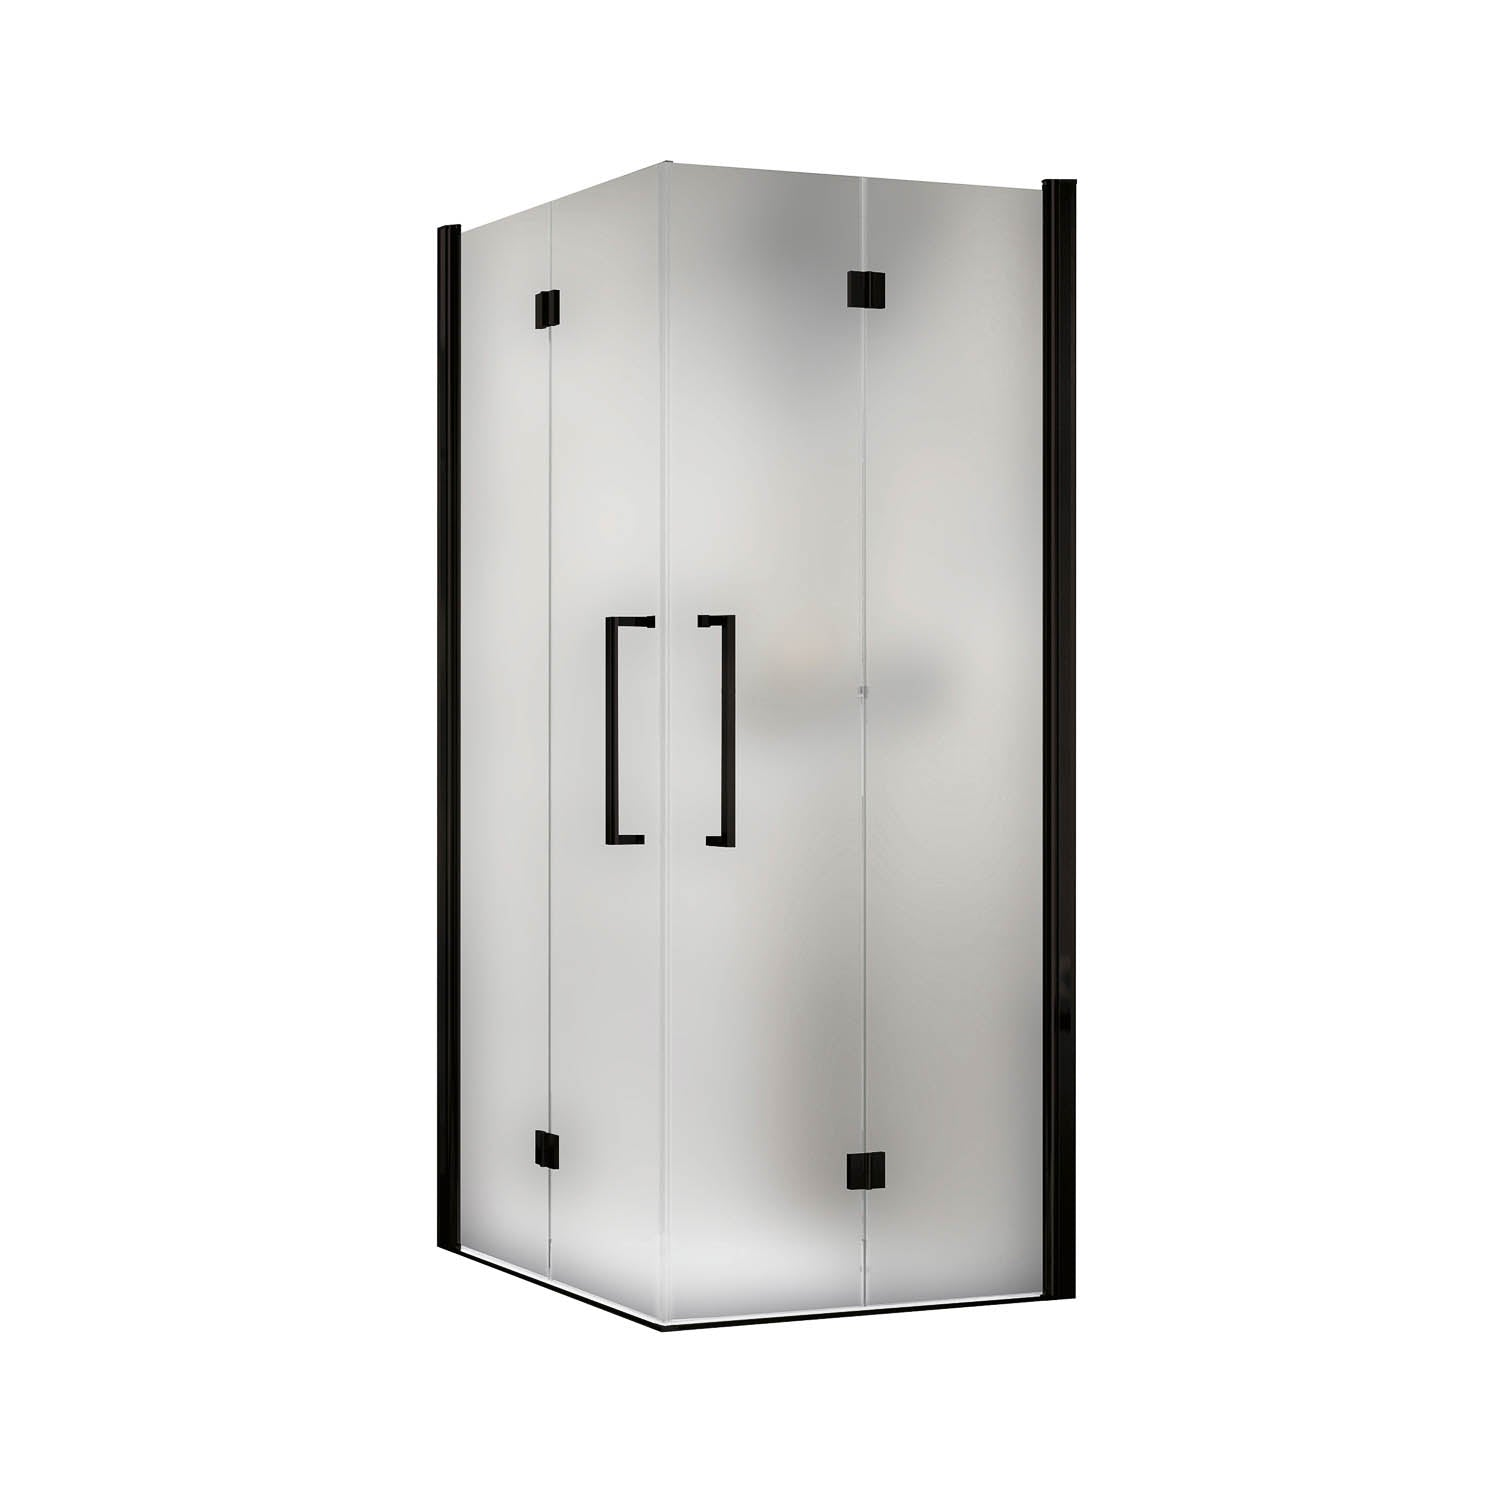 590-610mm Bliss Bi-folding Screen Frosted Glass with a matt black finish on a white background